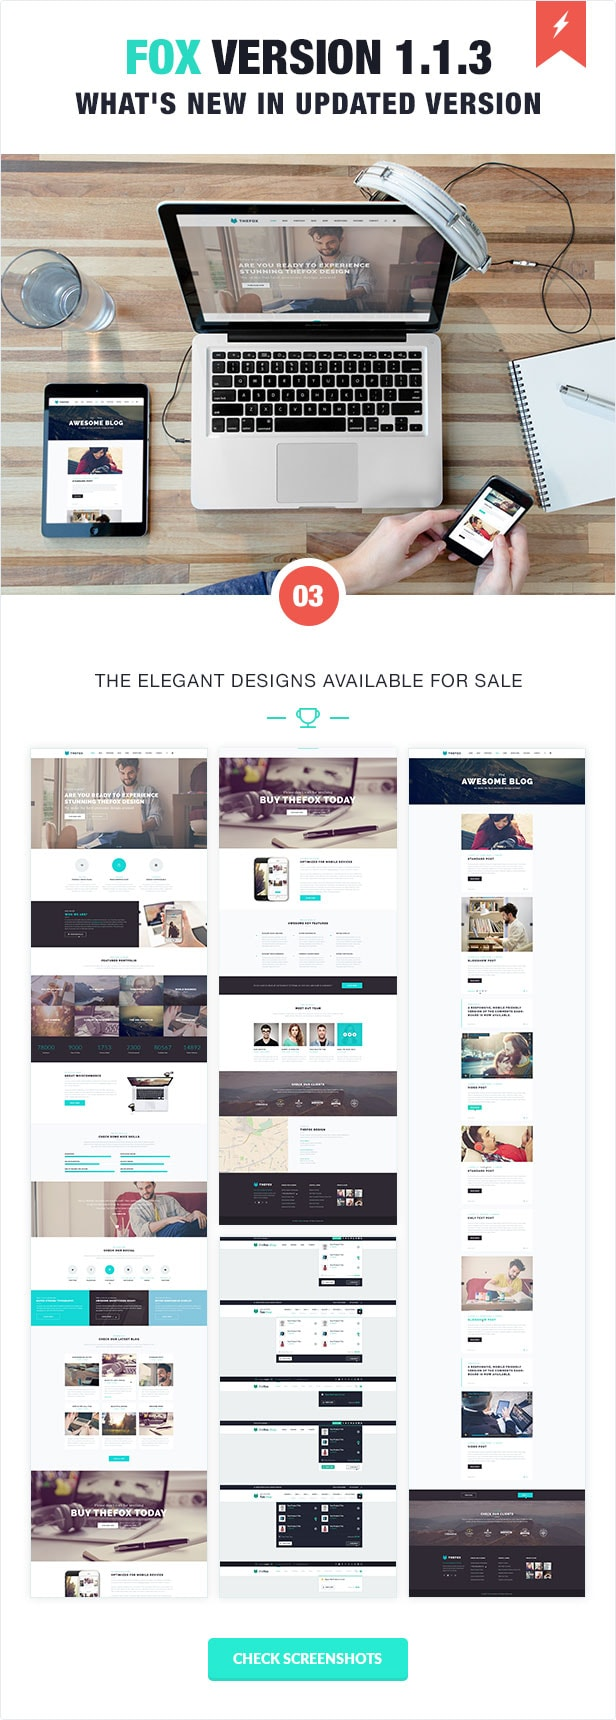 thefox psd template - the best on Envato Market - Themeforest's trending theme